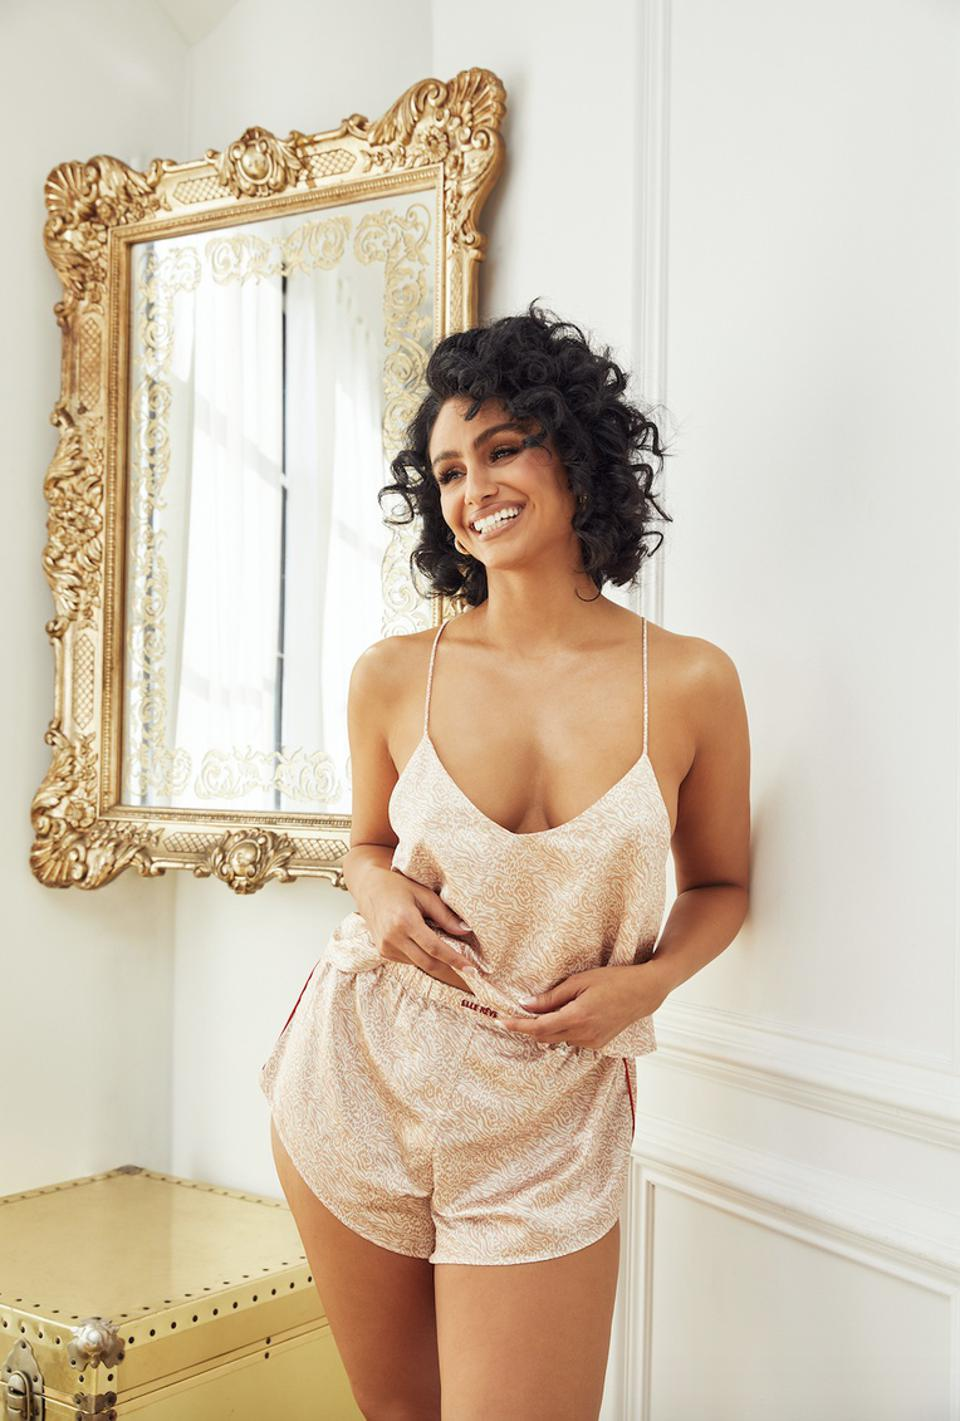 Nazanin Mandi launches her first lingerie and intimates brand, Elle Reve.